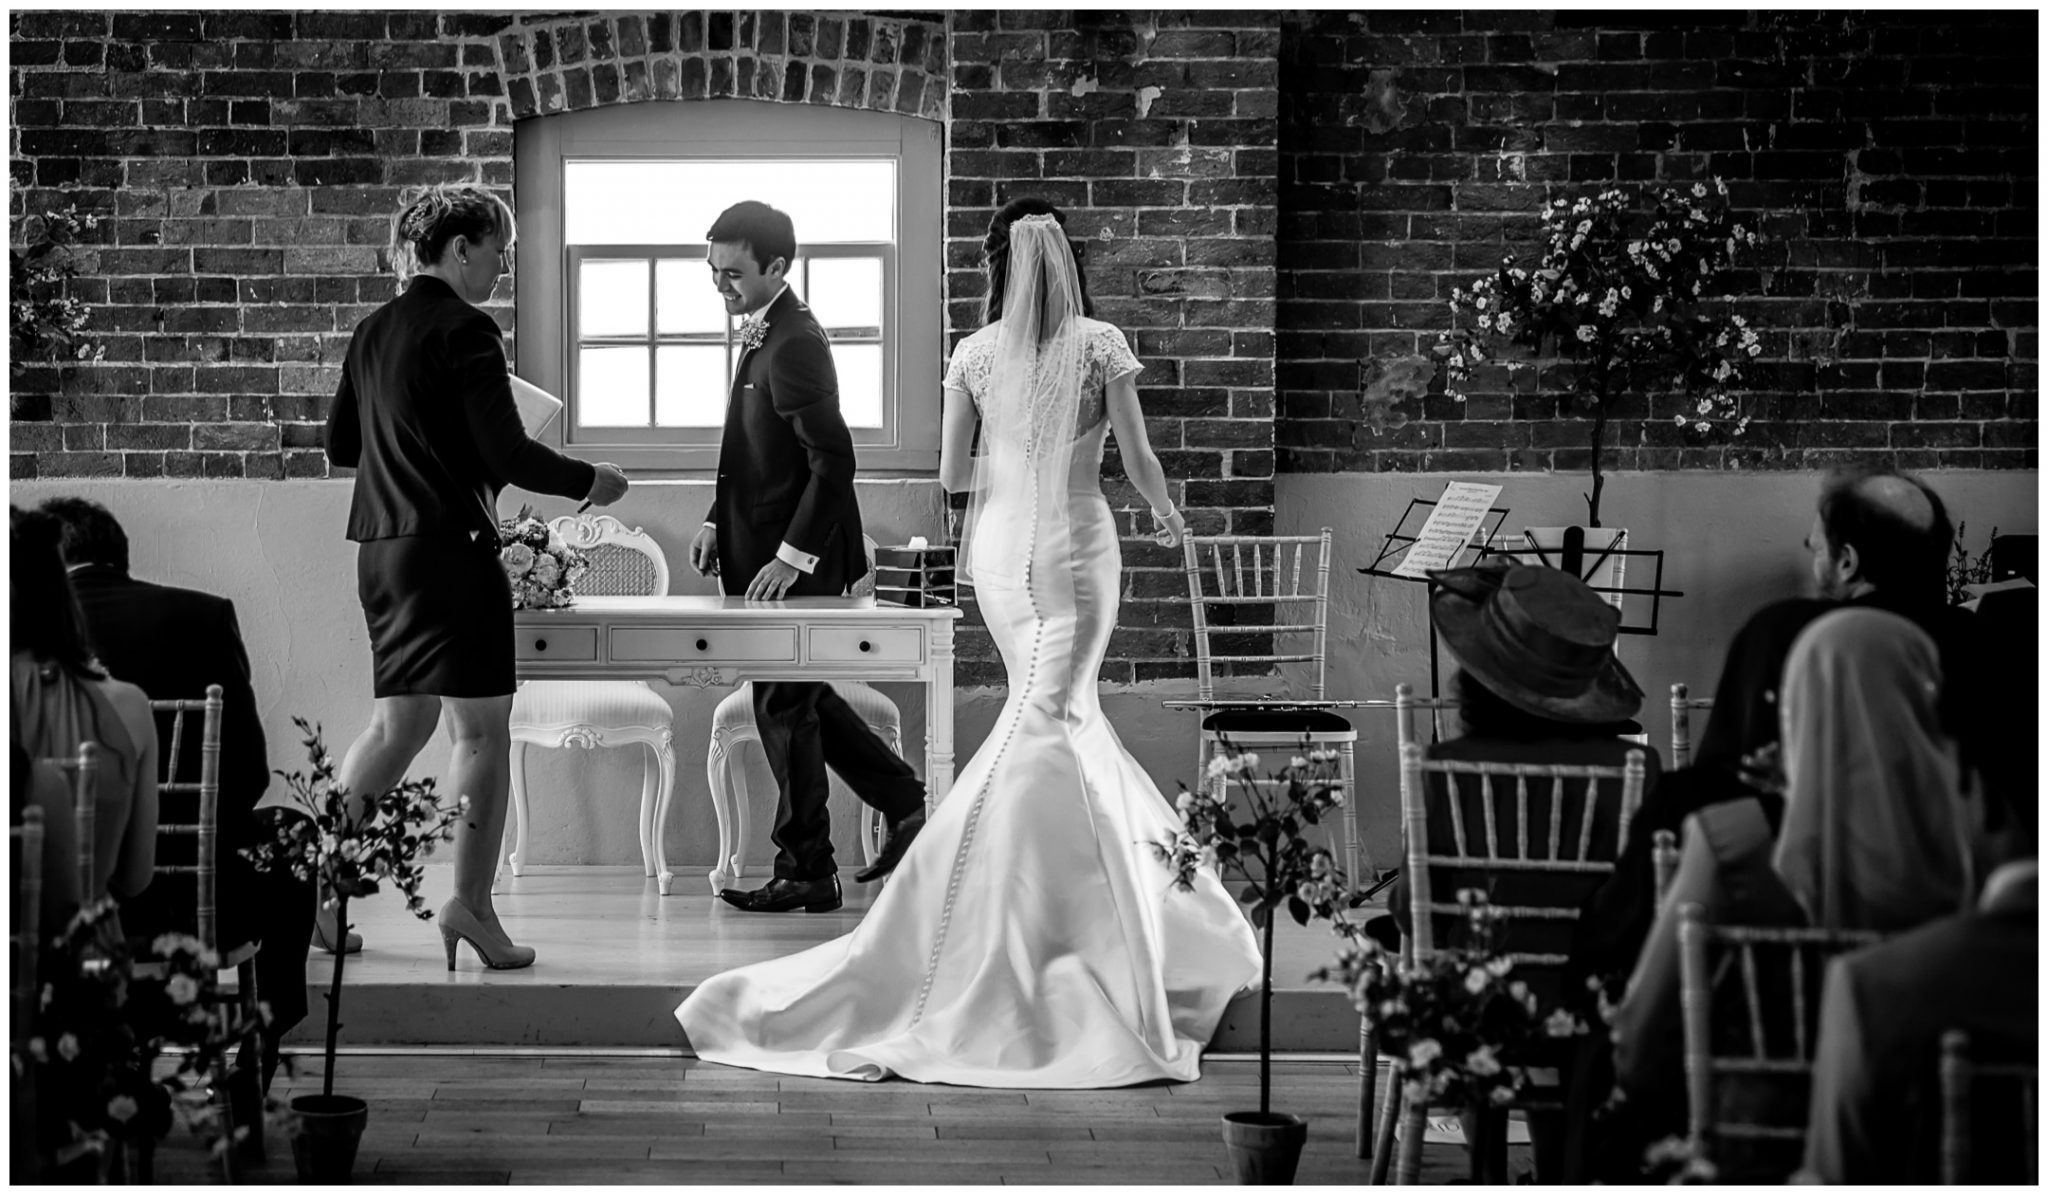 Sopley Mill Summer wedding black and white photo detailing bride in dress